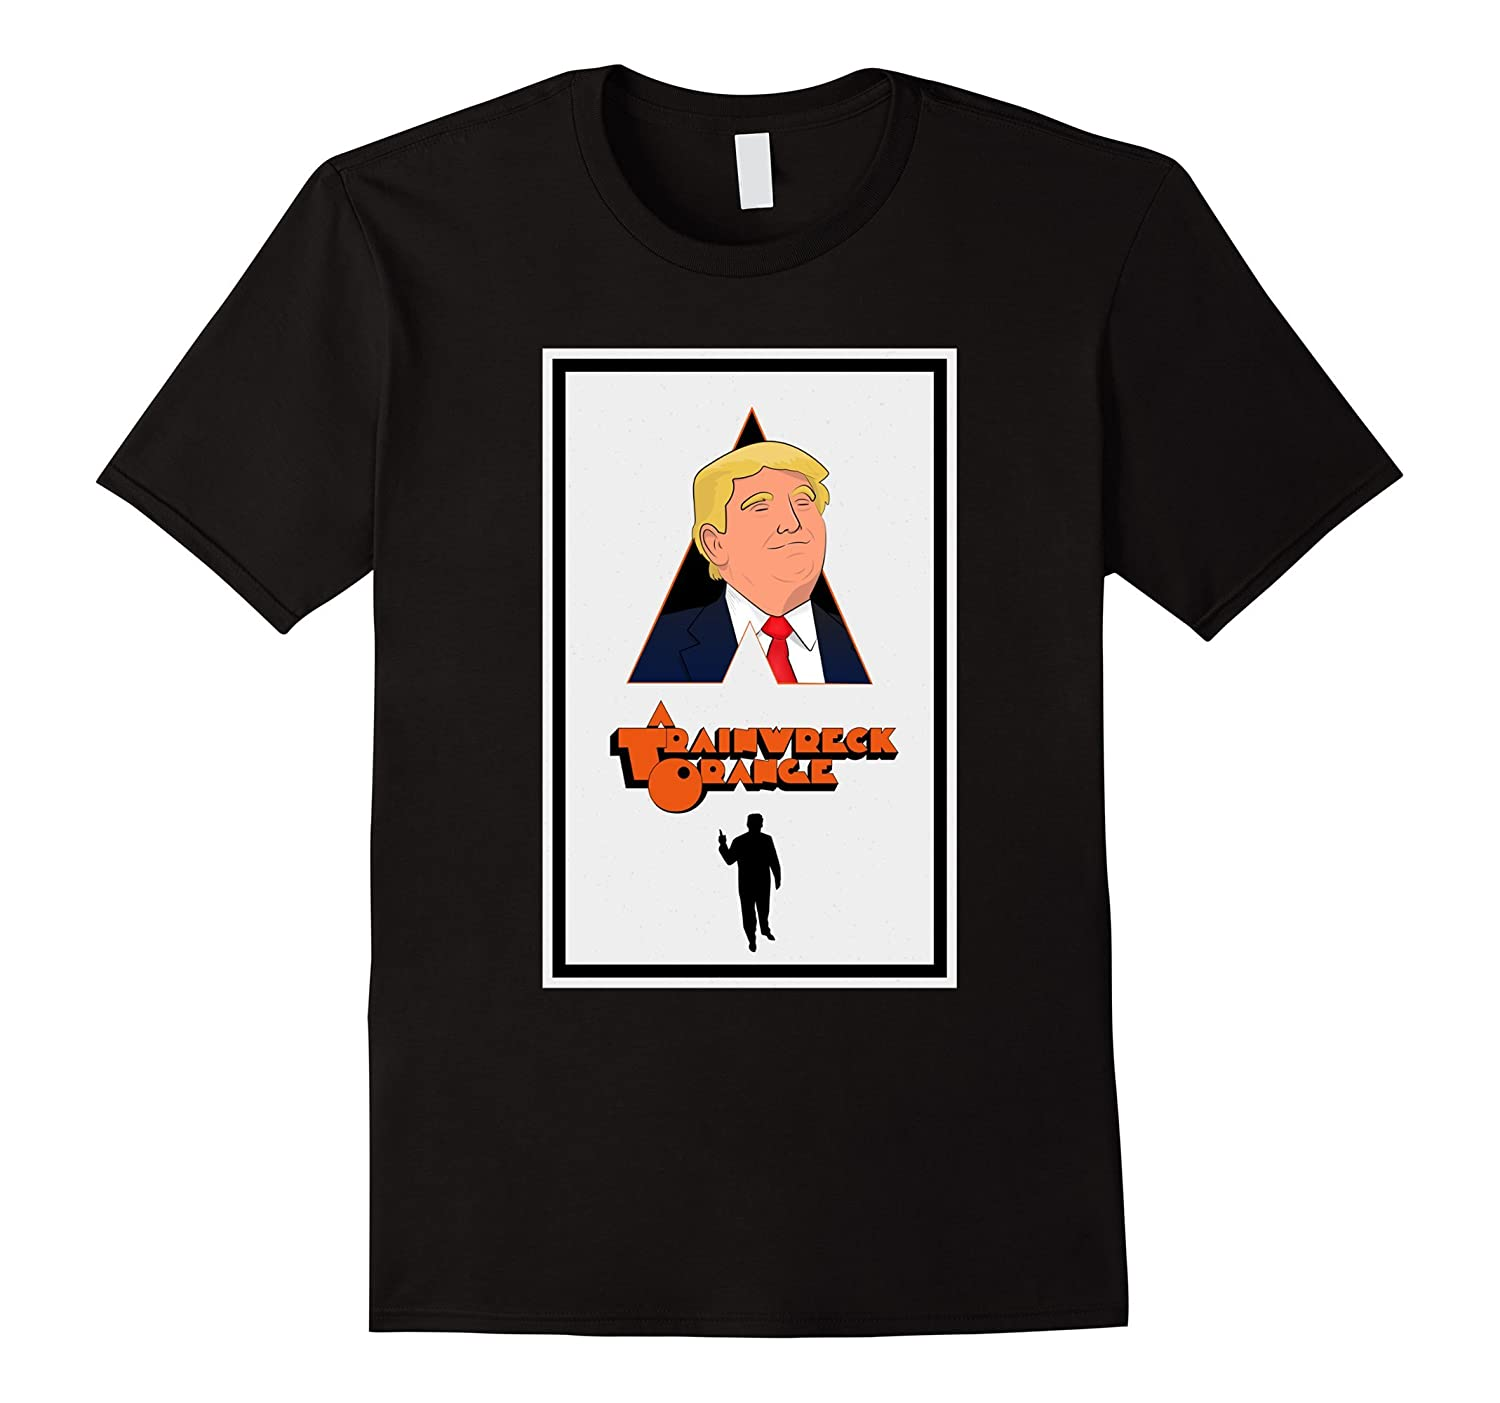 A Trainwreck Orange – Donald Trump T-shirt